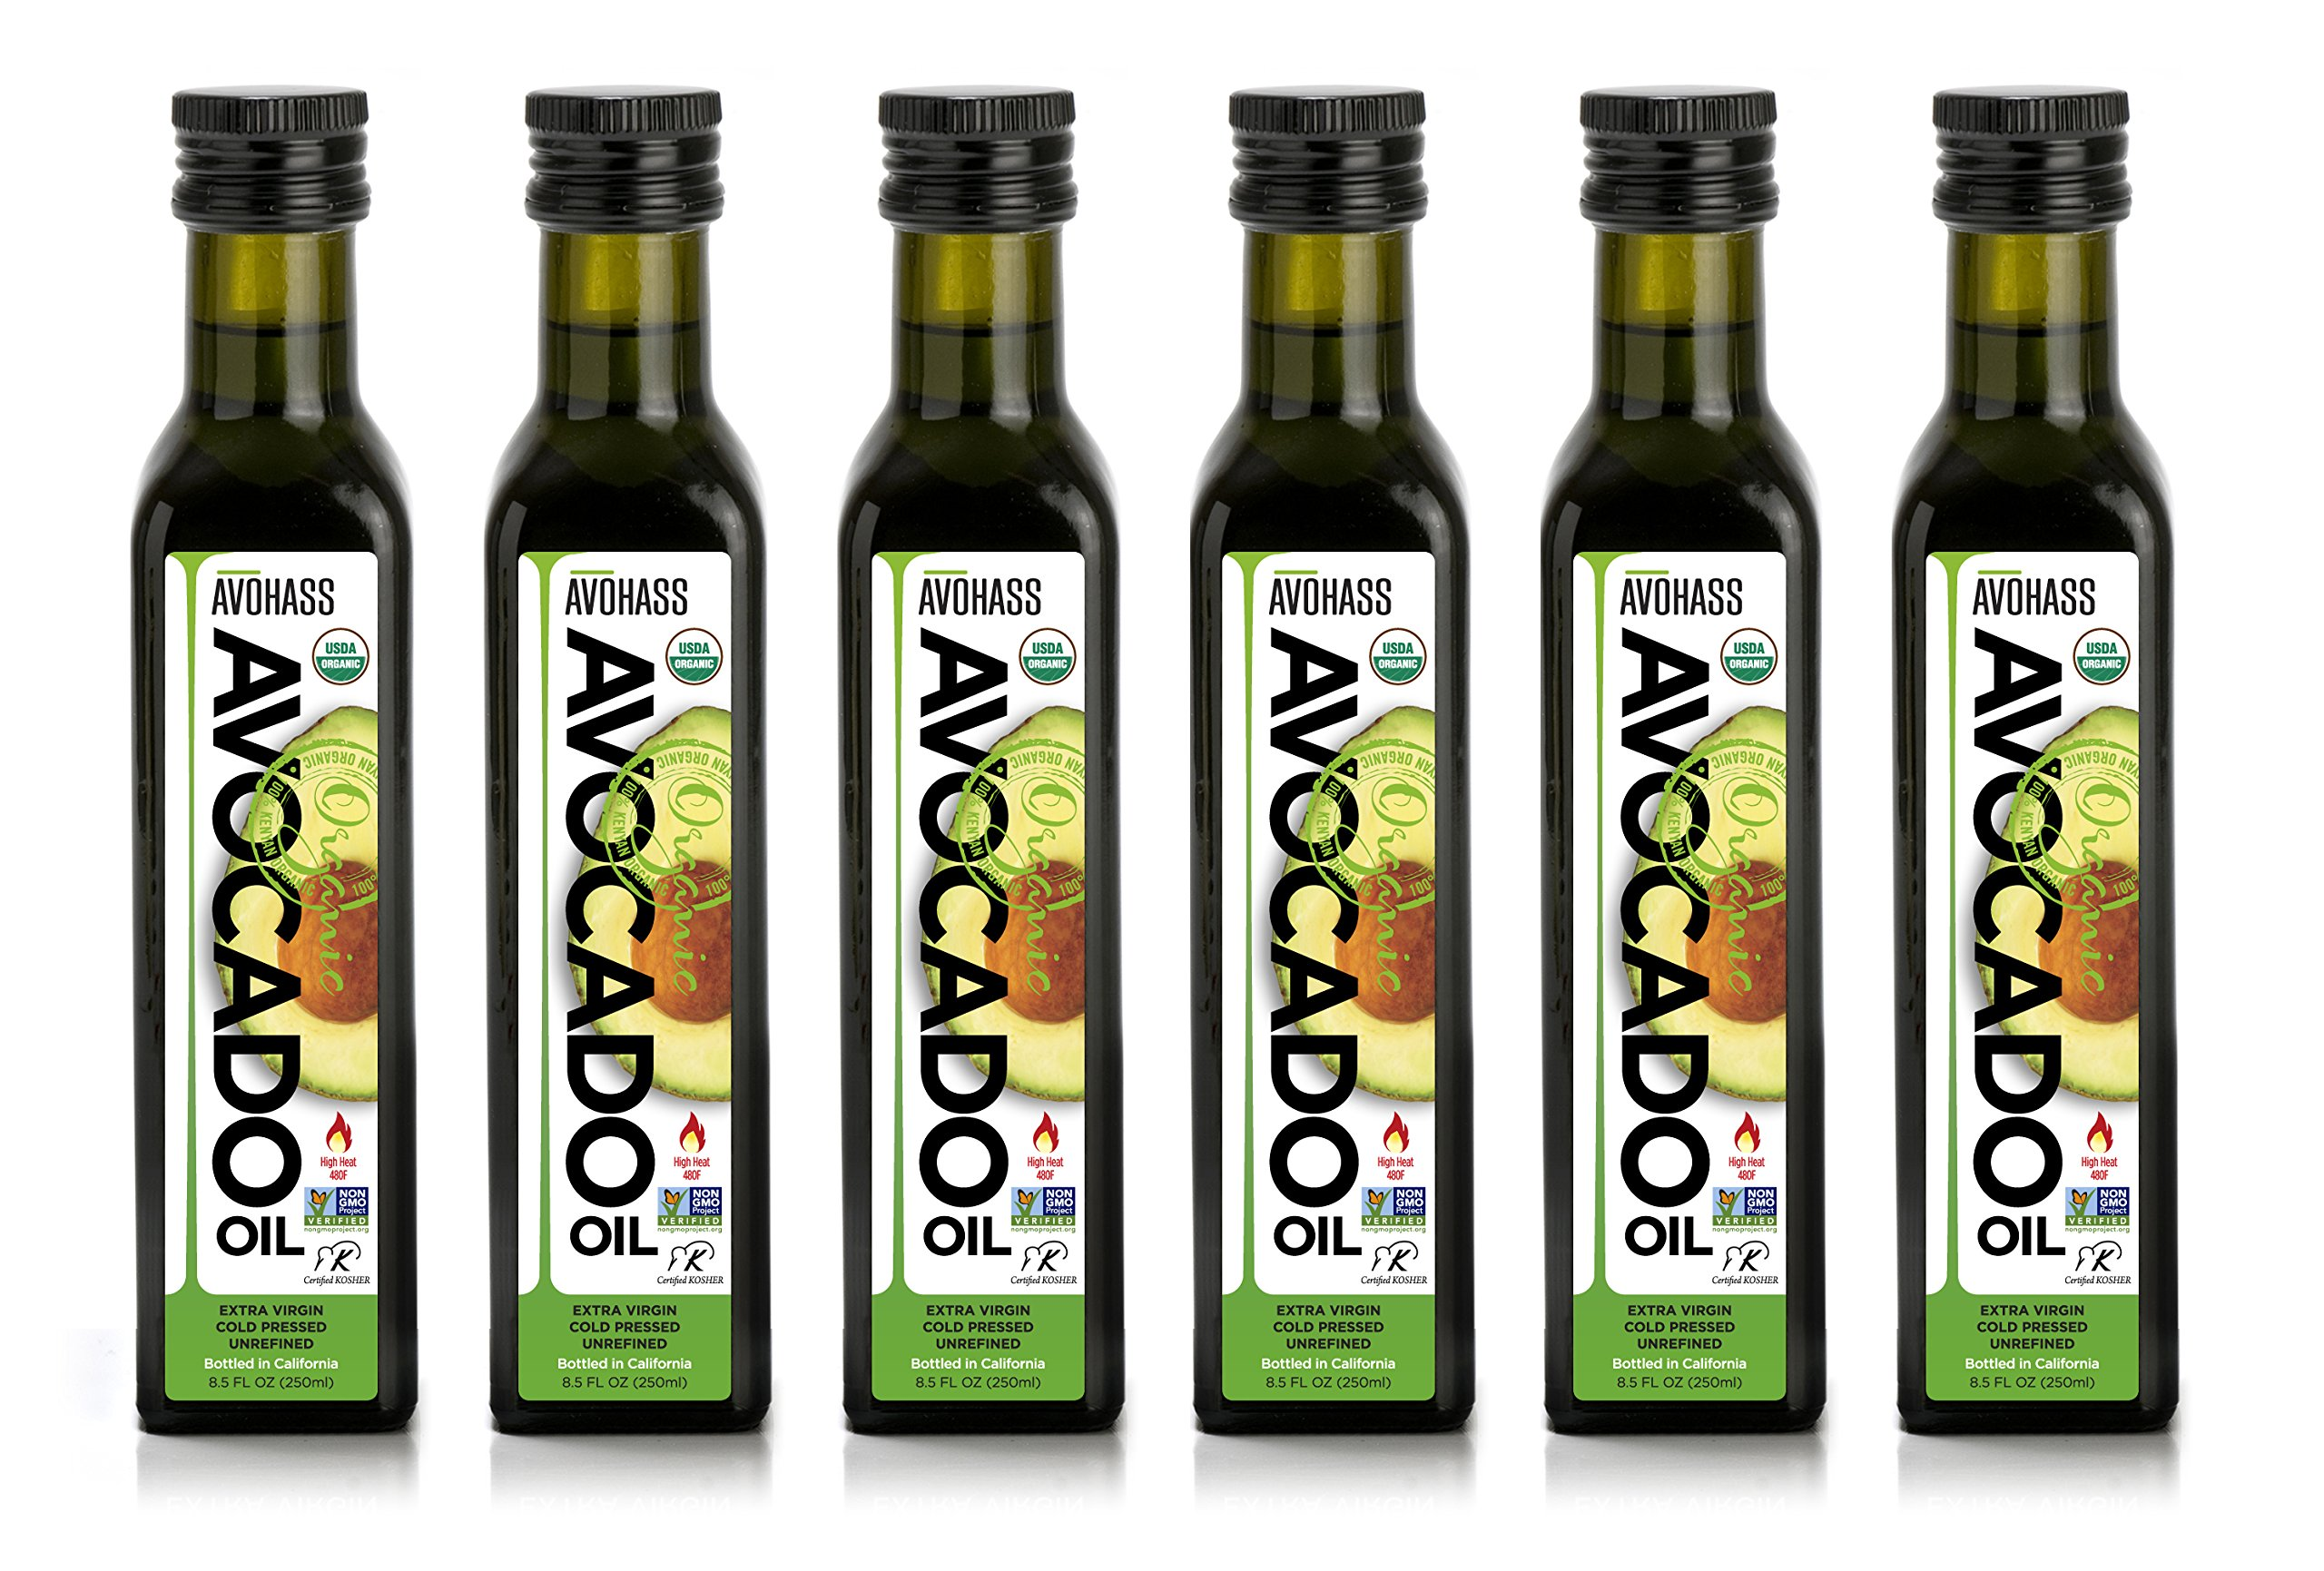 Avohass, Organic, Extra Virgin, Avocado Oil, Product of California, 8.5 fl oz, 6 Bottle Case